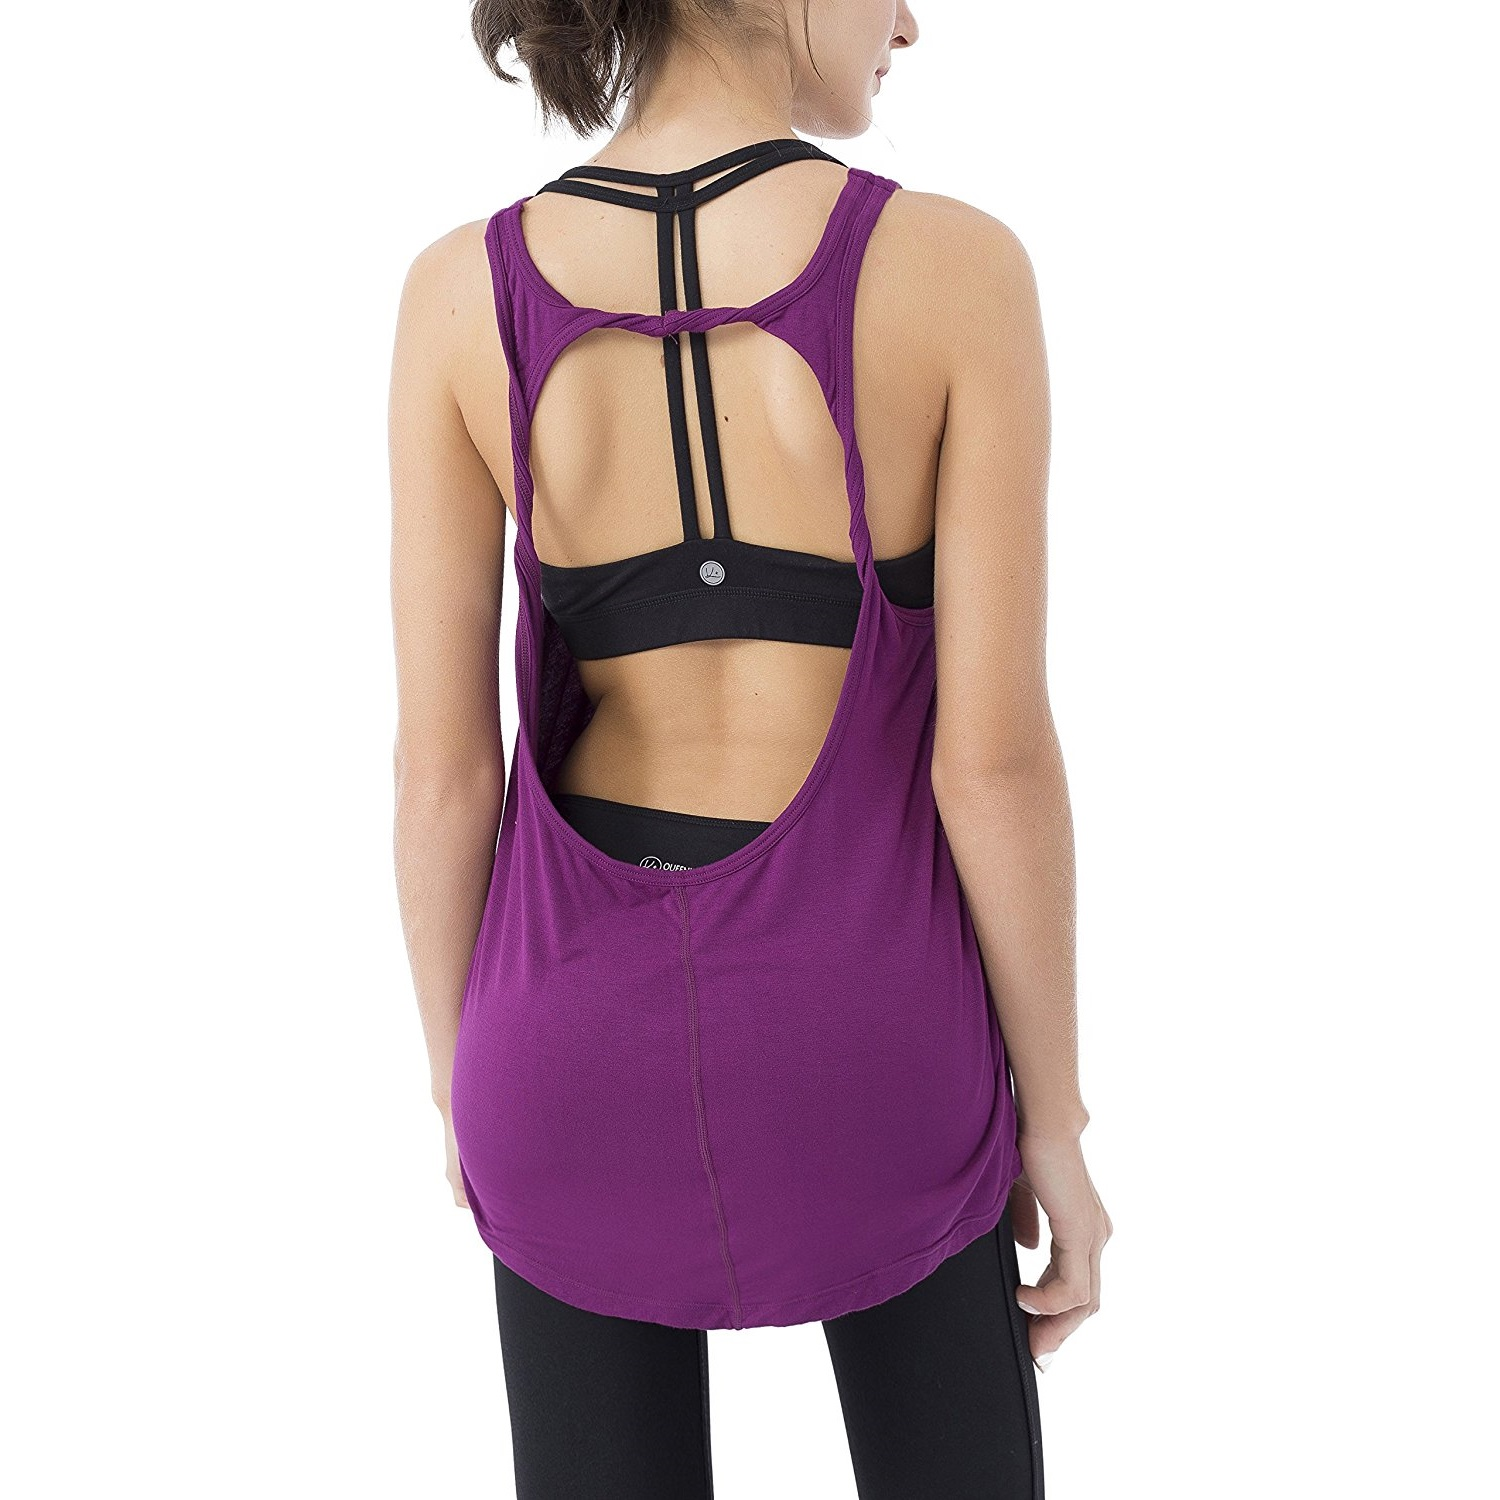 queenie ke womens dark magenta cowl back yoga shirt